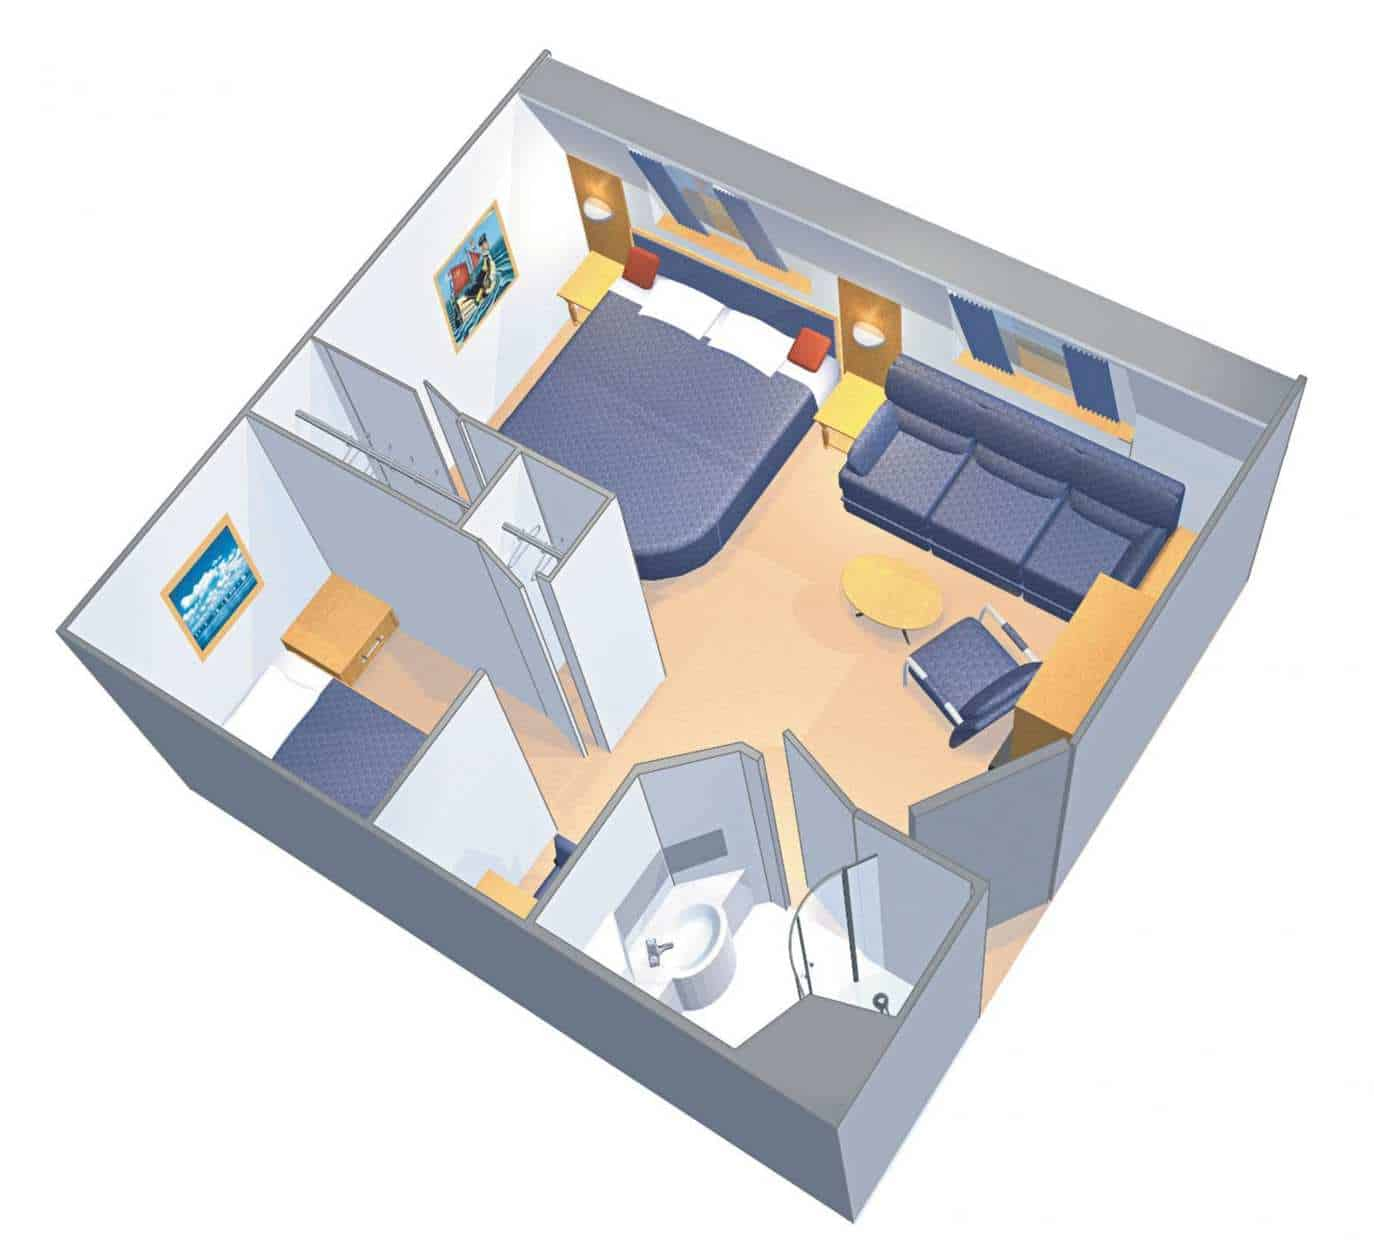 UltraSpacious_OV_FloorPLan